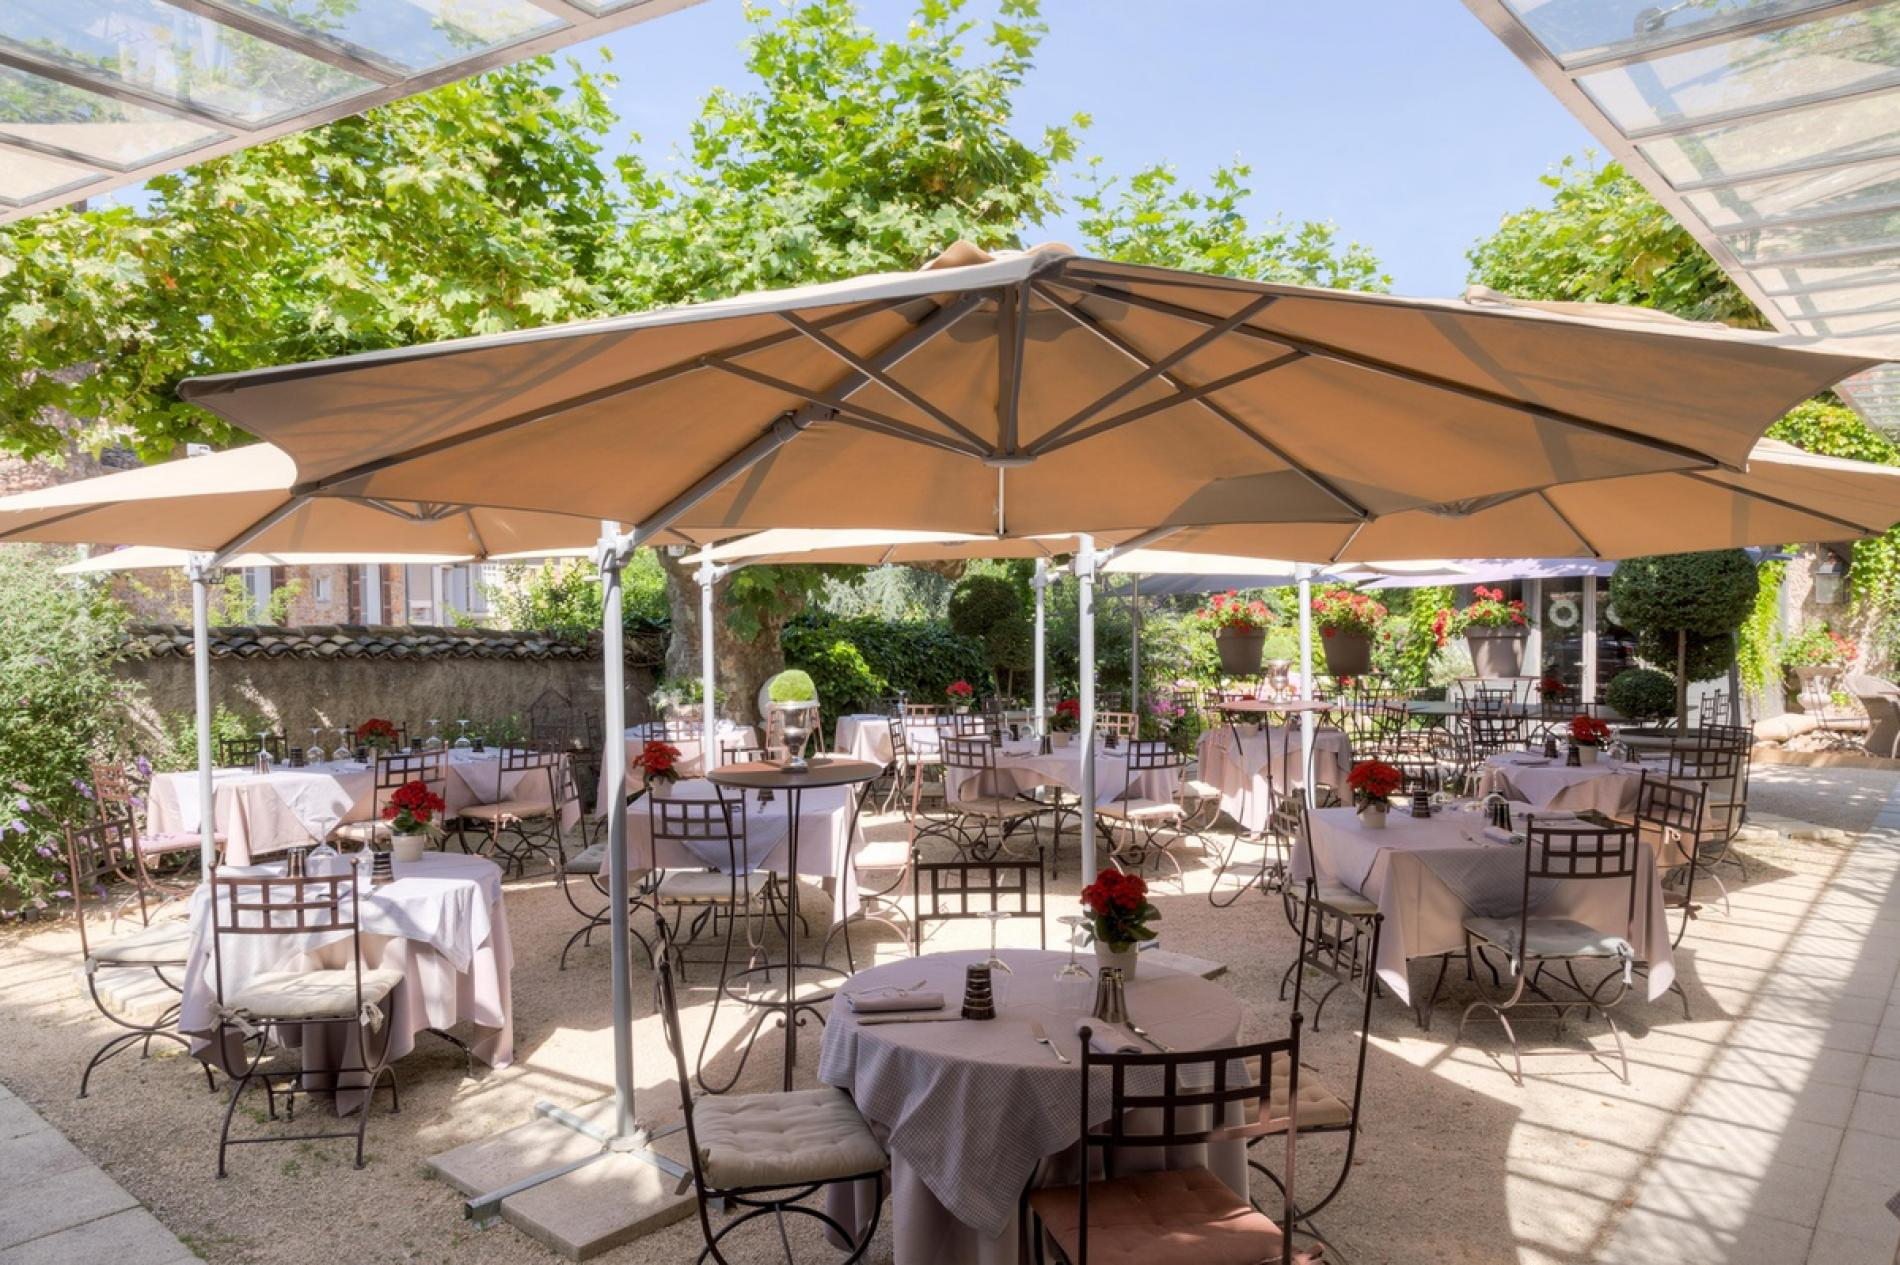 Logis h tel restaurant charme business lyon for Terrasse lyon